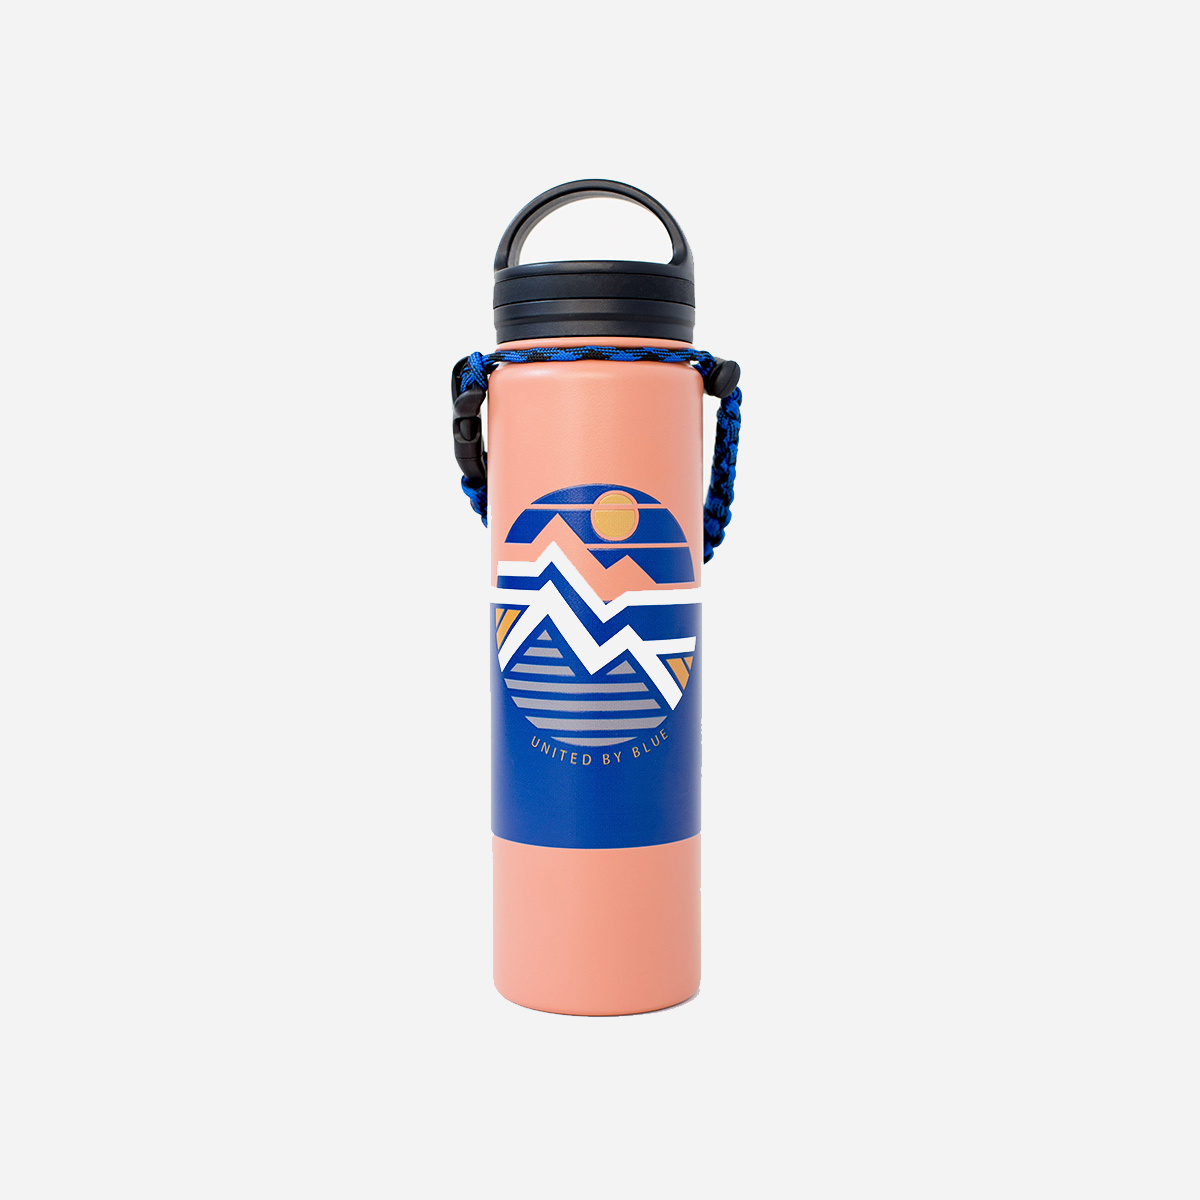 United by Blue Stainless Steel 22oz Bottle